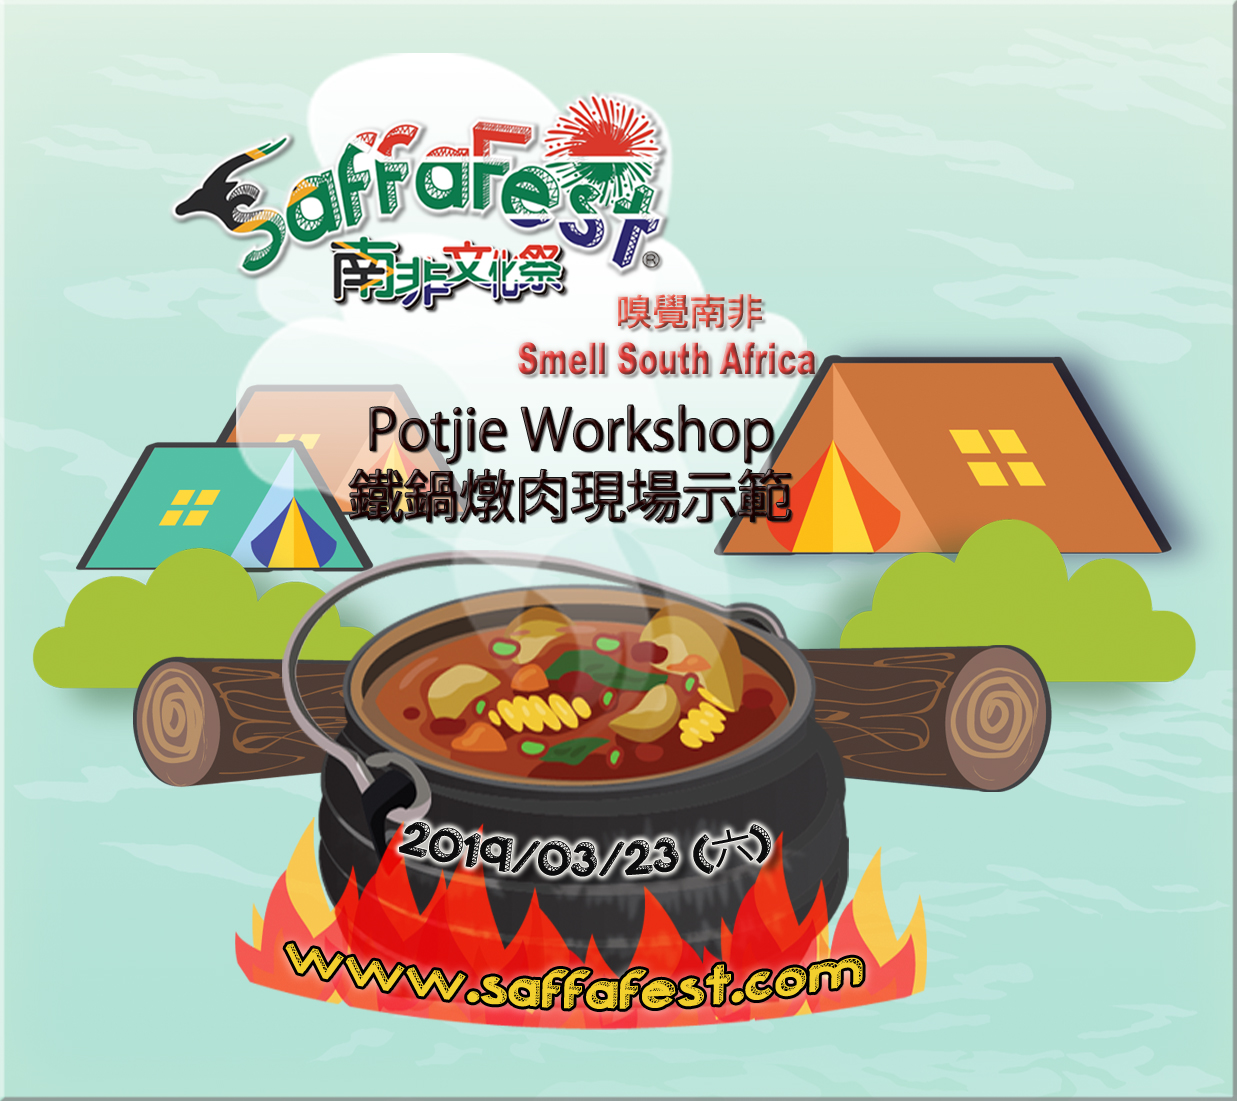 Potjie Workshop